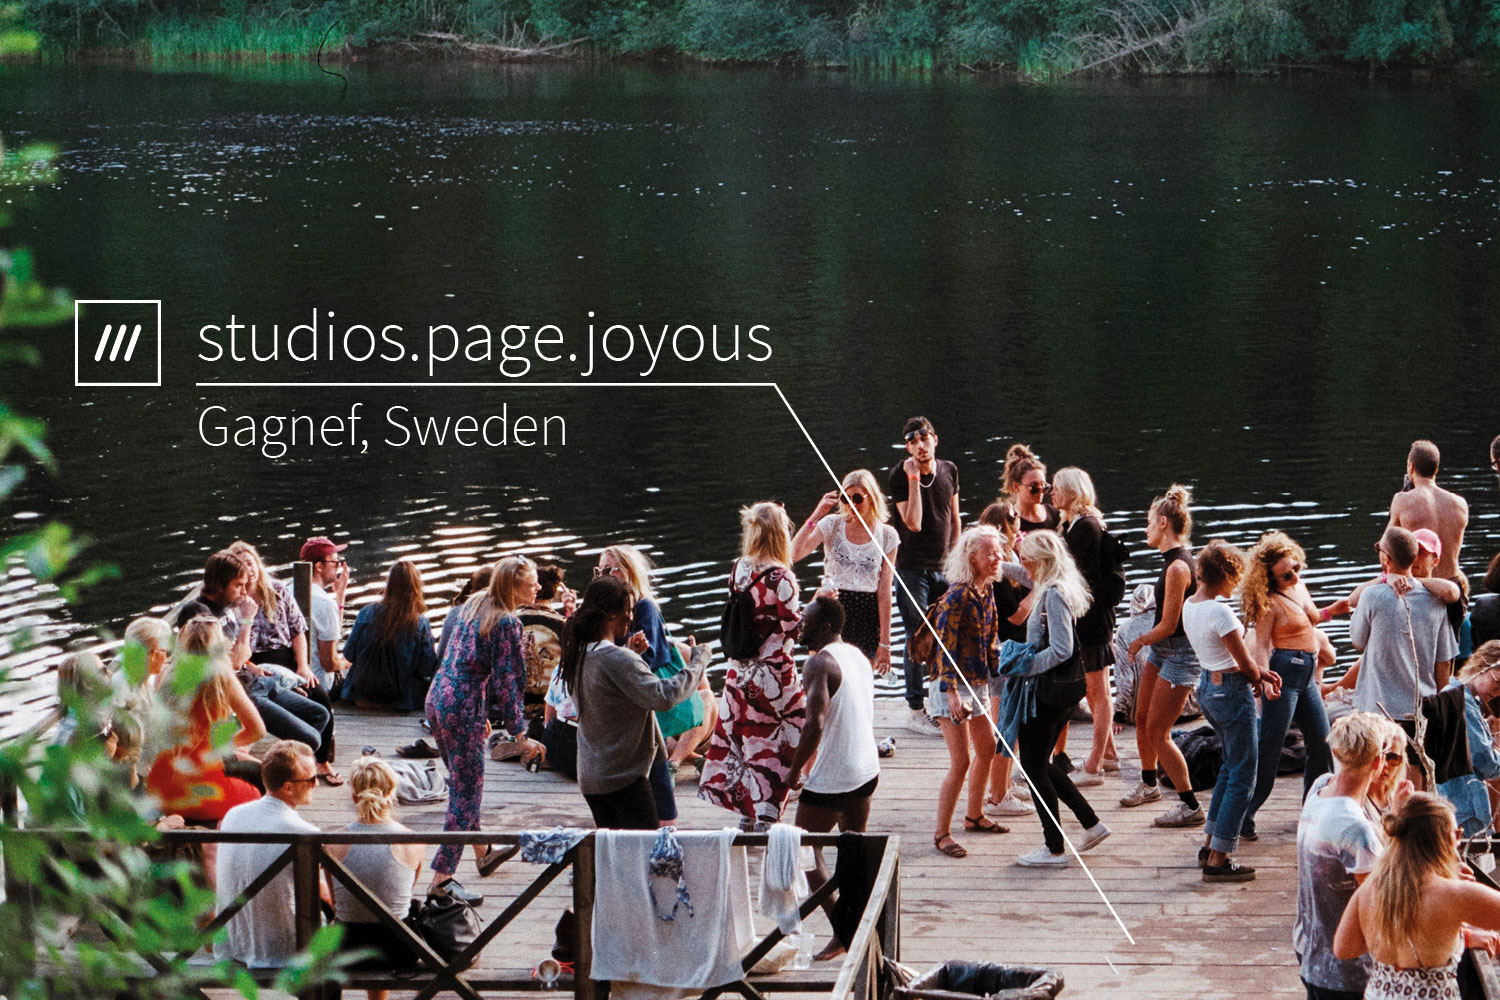 people gather on a dock next to a river at 3 word address studios.page.joyous